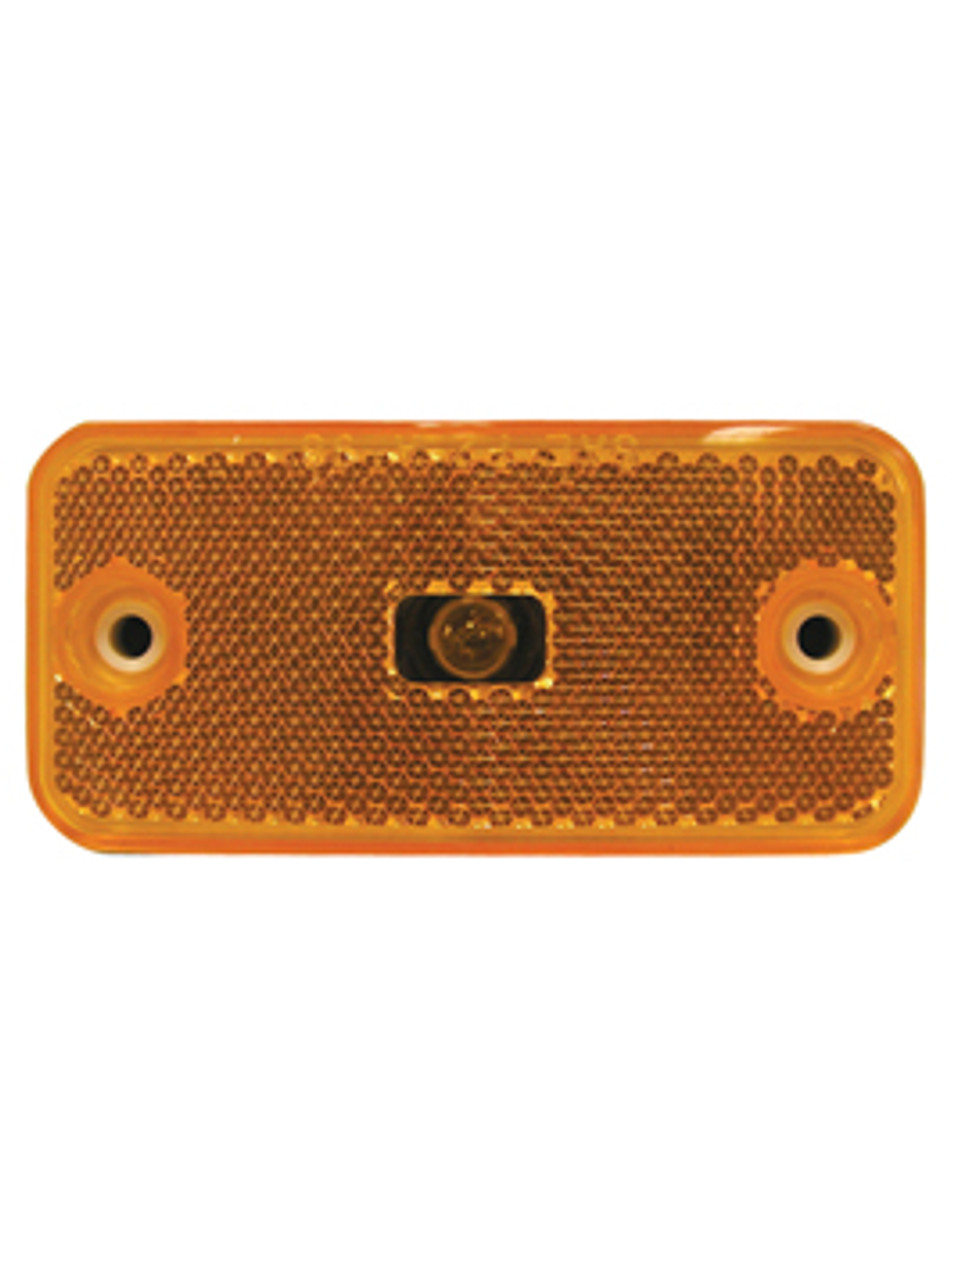 2548A --- Rectangular Clearance/Side Marker Light with Reflector